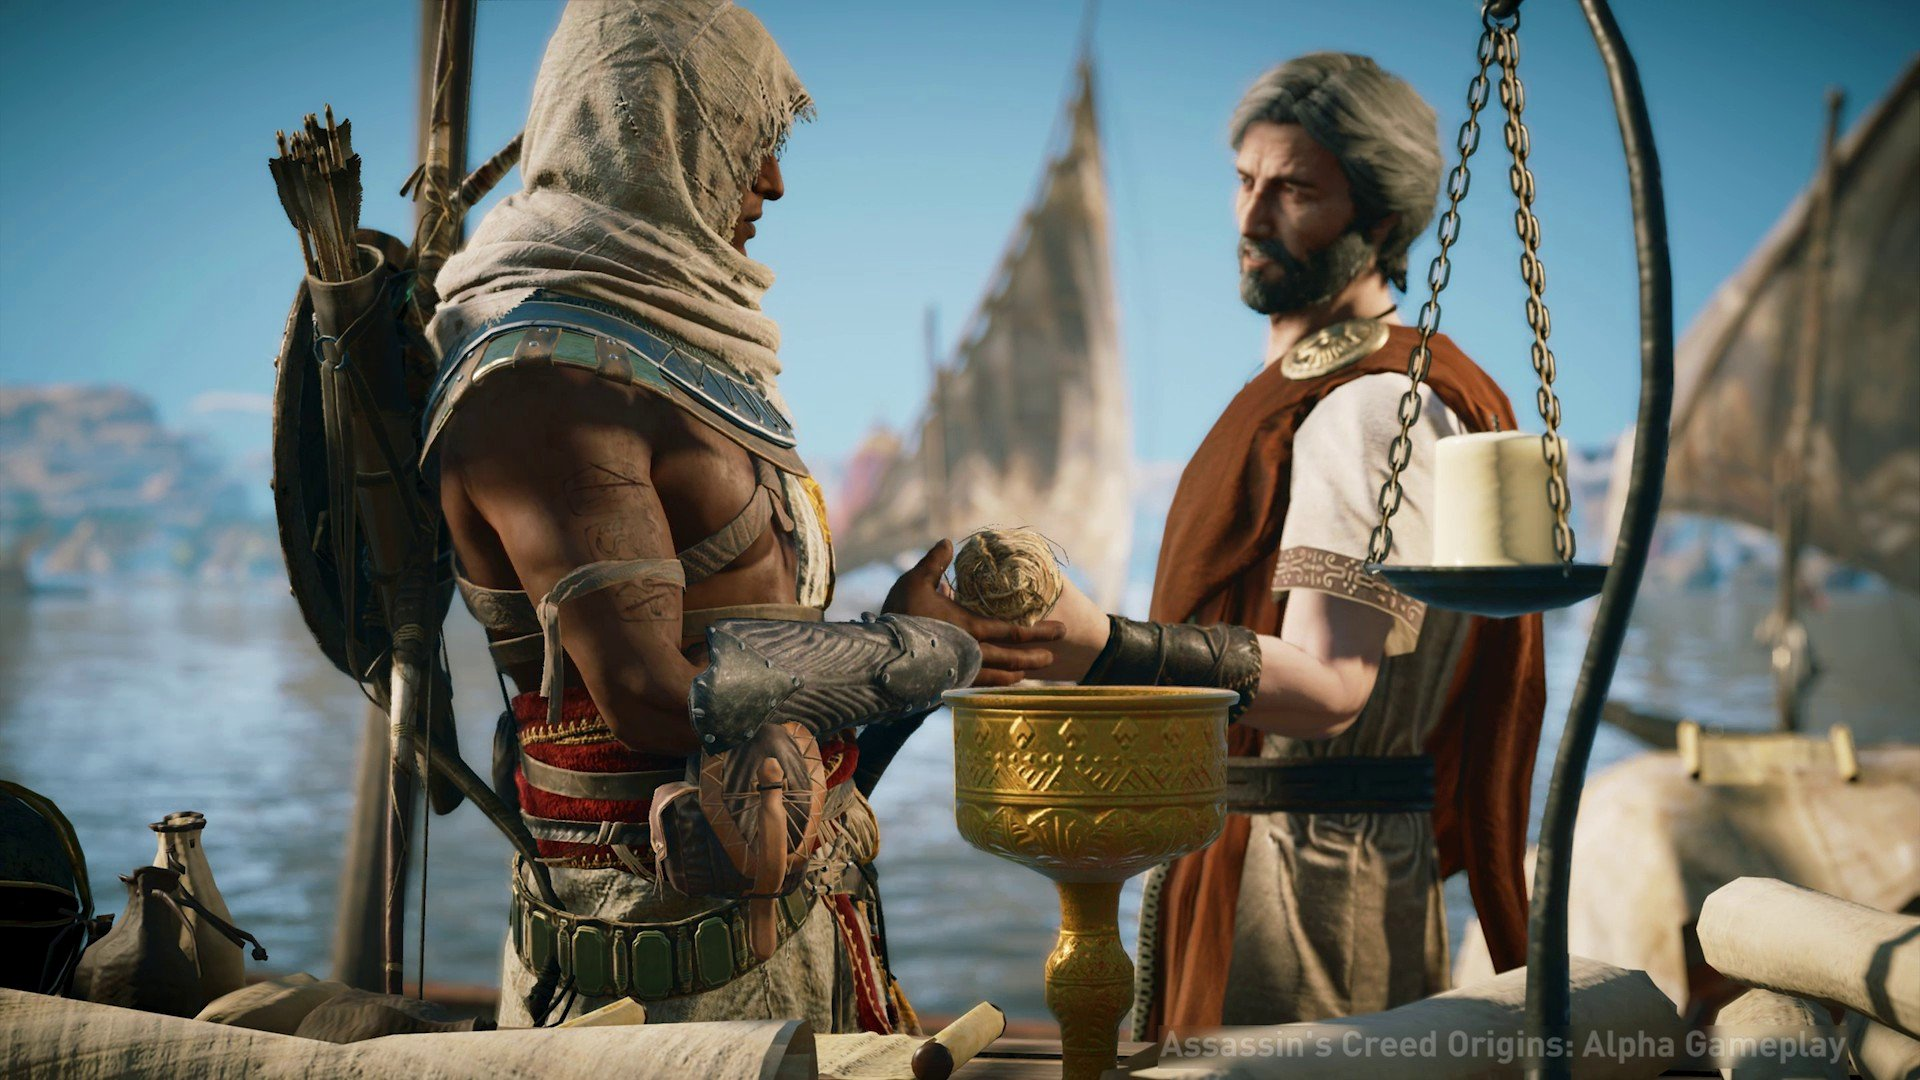 Ubisoft Dipusingkan Dengan Spam Lelucon Rasis Di Steam Forum Assassins Creed Origins Gamebrott Com